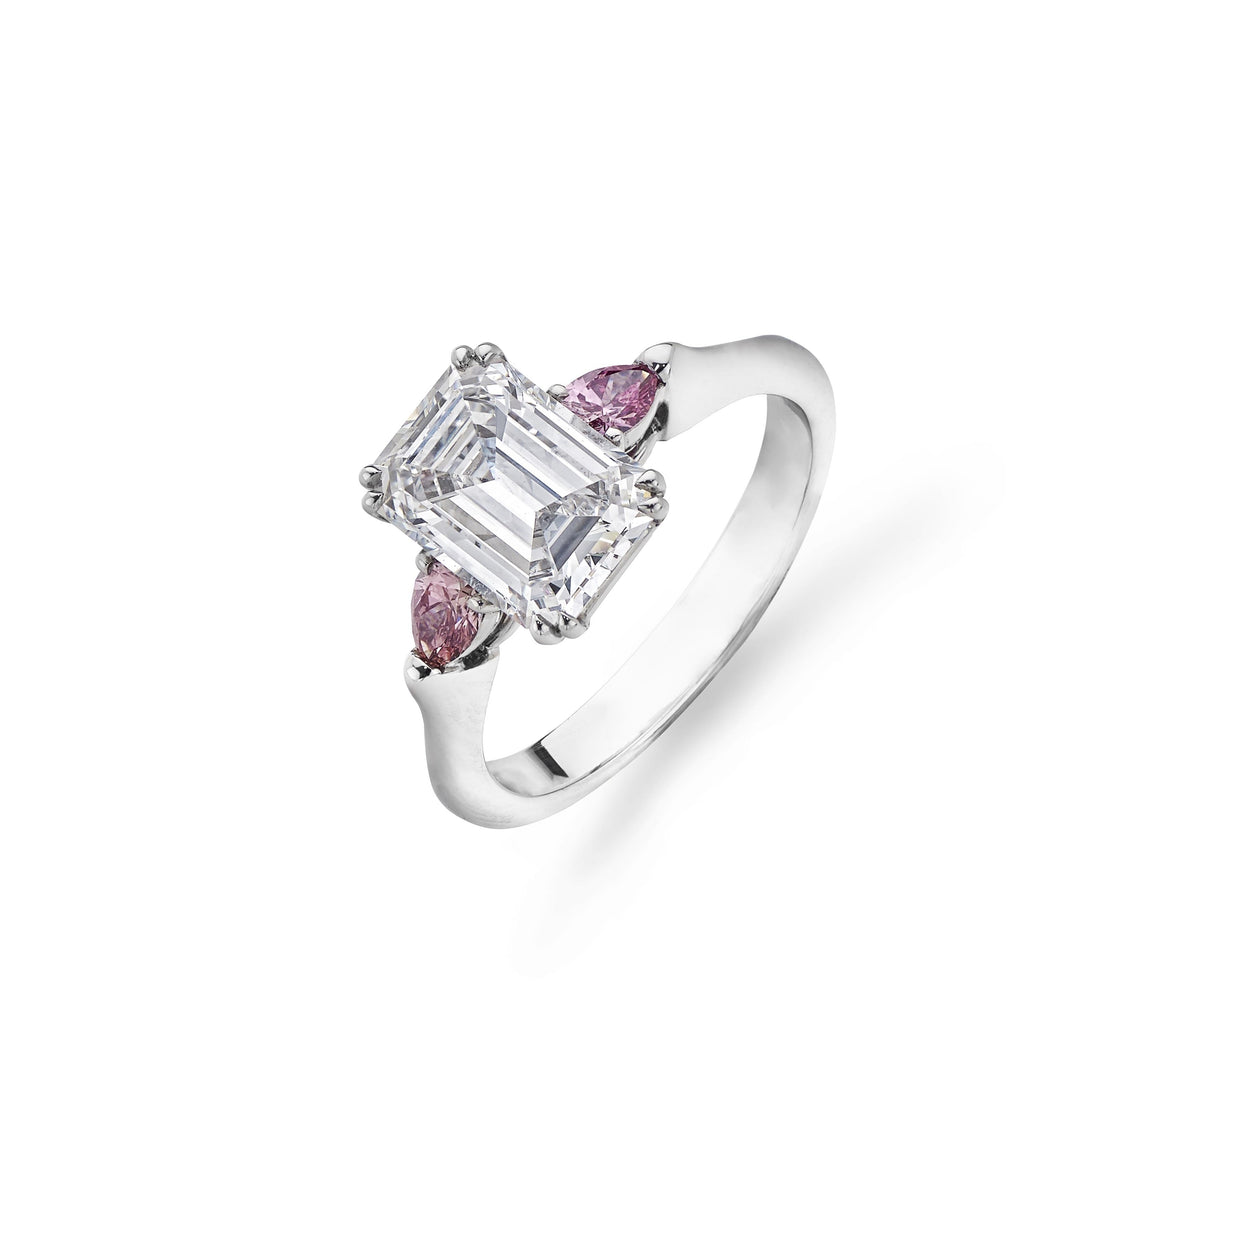 Emerald-Cut and Pink Purple Three-Stone Engagement Ring - Hamilton & Inches